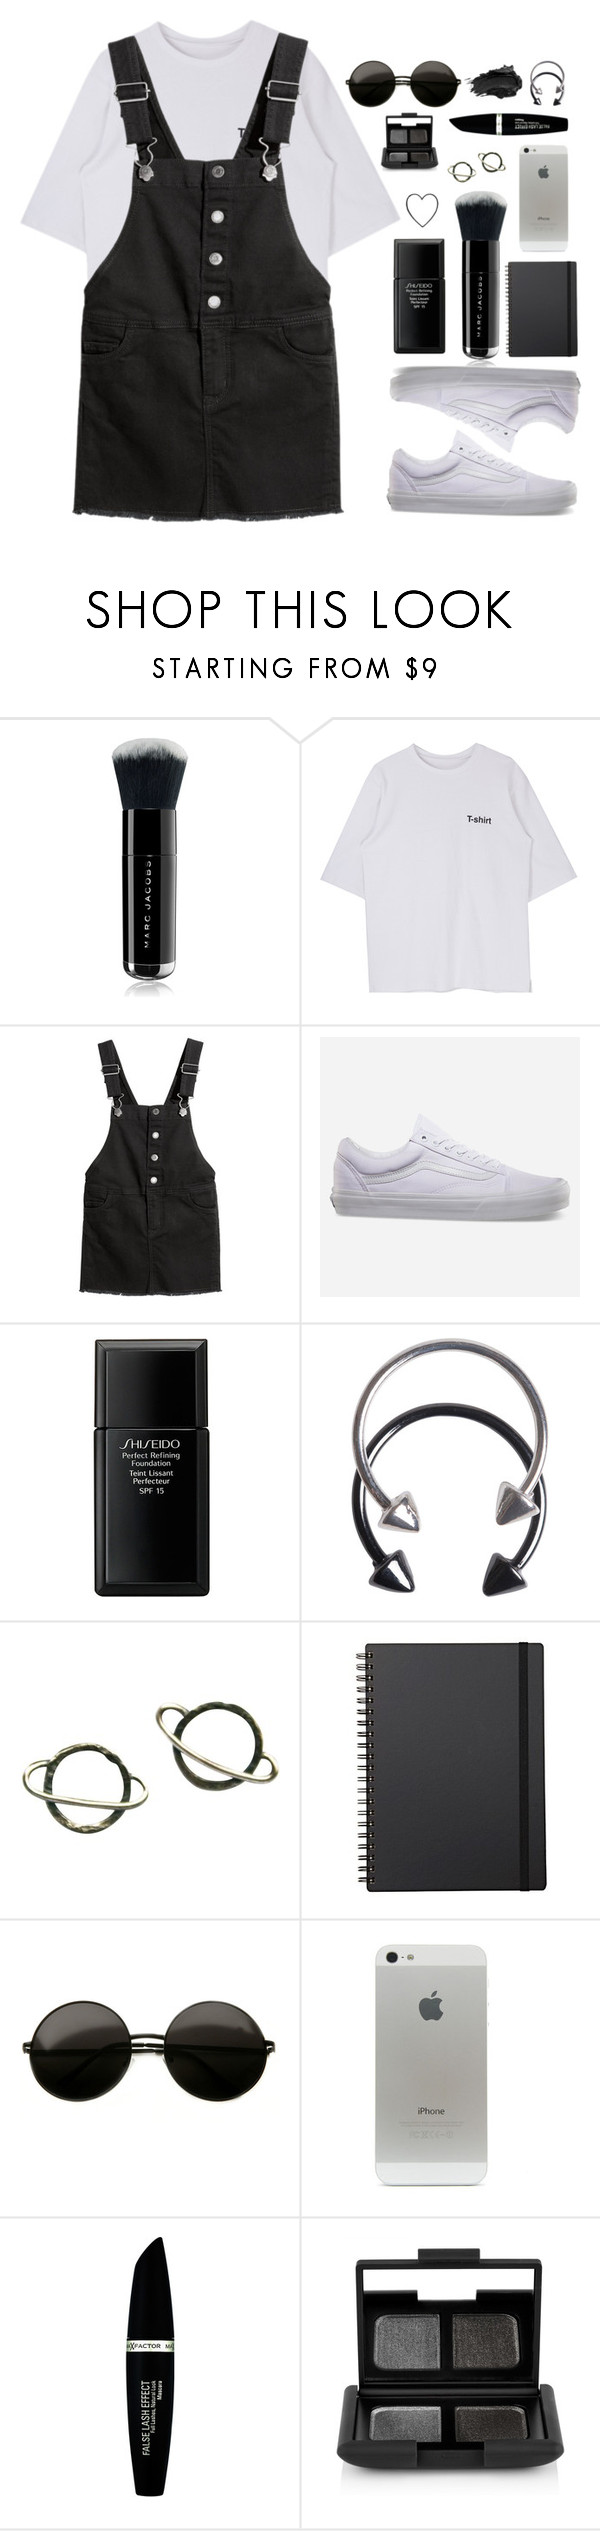 """""""she told me just shut up and drink your diet soda"""" by themusiccookie ❤ liked on Polyvore featuring Marc Jacobs, Vans, Shiseido, Pieces, Stefanie Sheehan Jewelry, Muji, Max Factor, NARS Cosmetics and Urban Decay"""